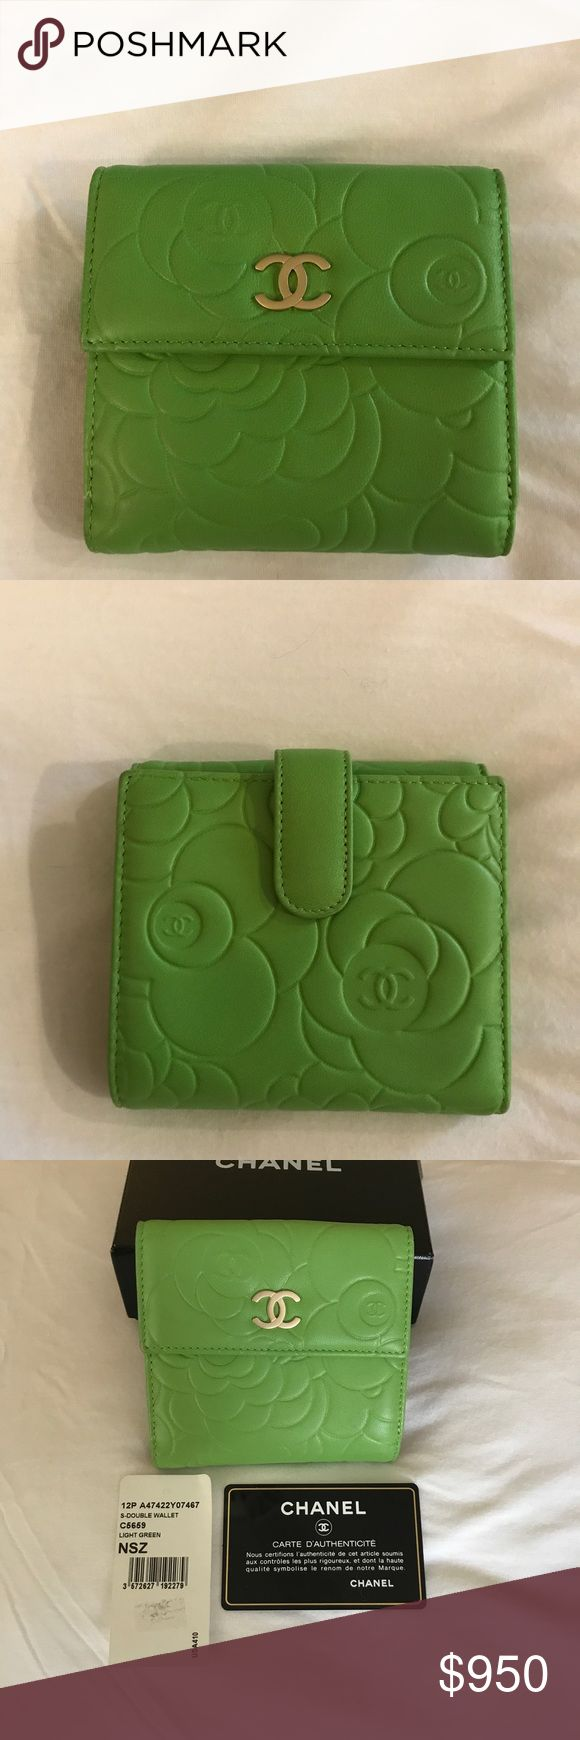 Chanel Camellia Green Bifold Wallet - VERY RARE!! Extremely Rare Chanel Camellia Green Bifold Wallet - Brand new, never used, and made of super soft lambskin leather. Comes with Chanel box and Chanel Authenticity Card. Chanel authenticity label reads 16122686. CHANEL Bags Wallets